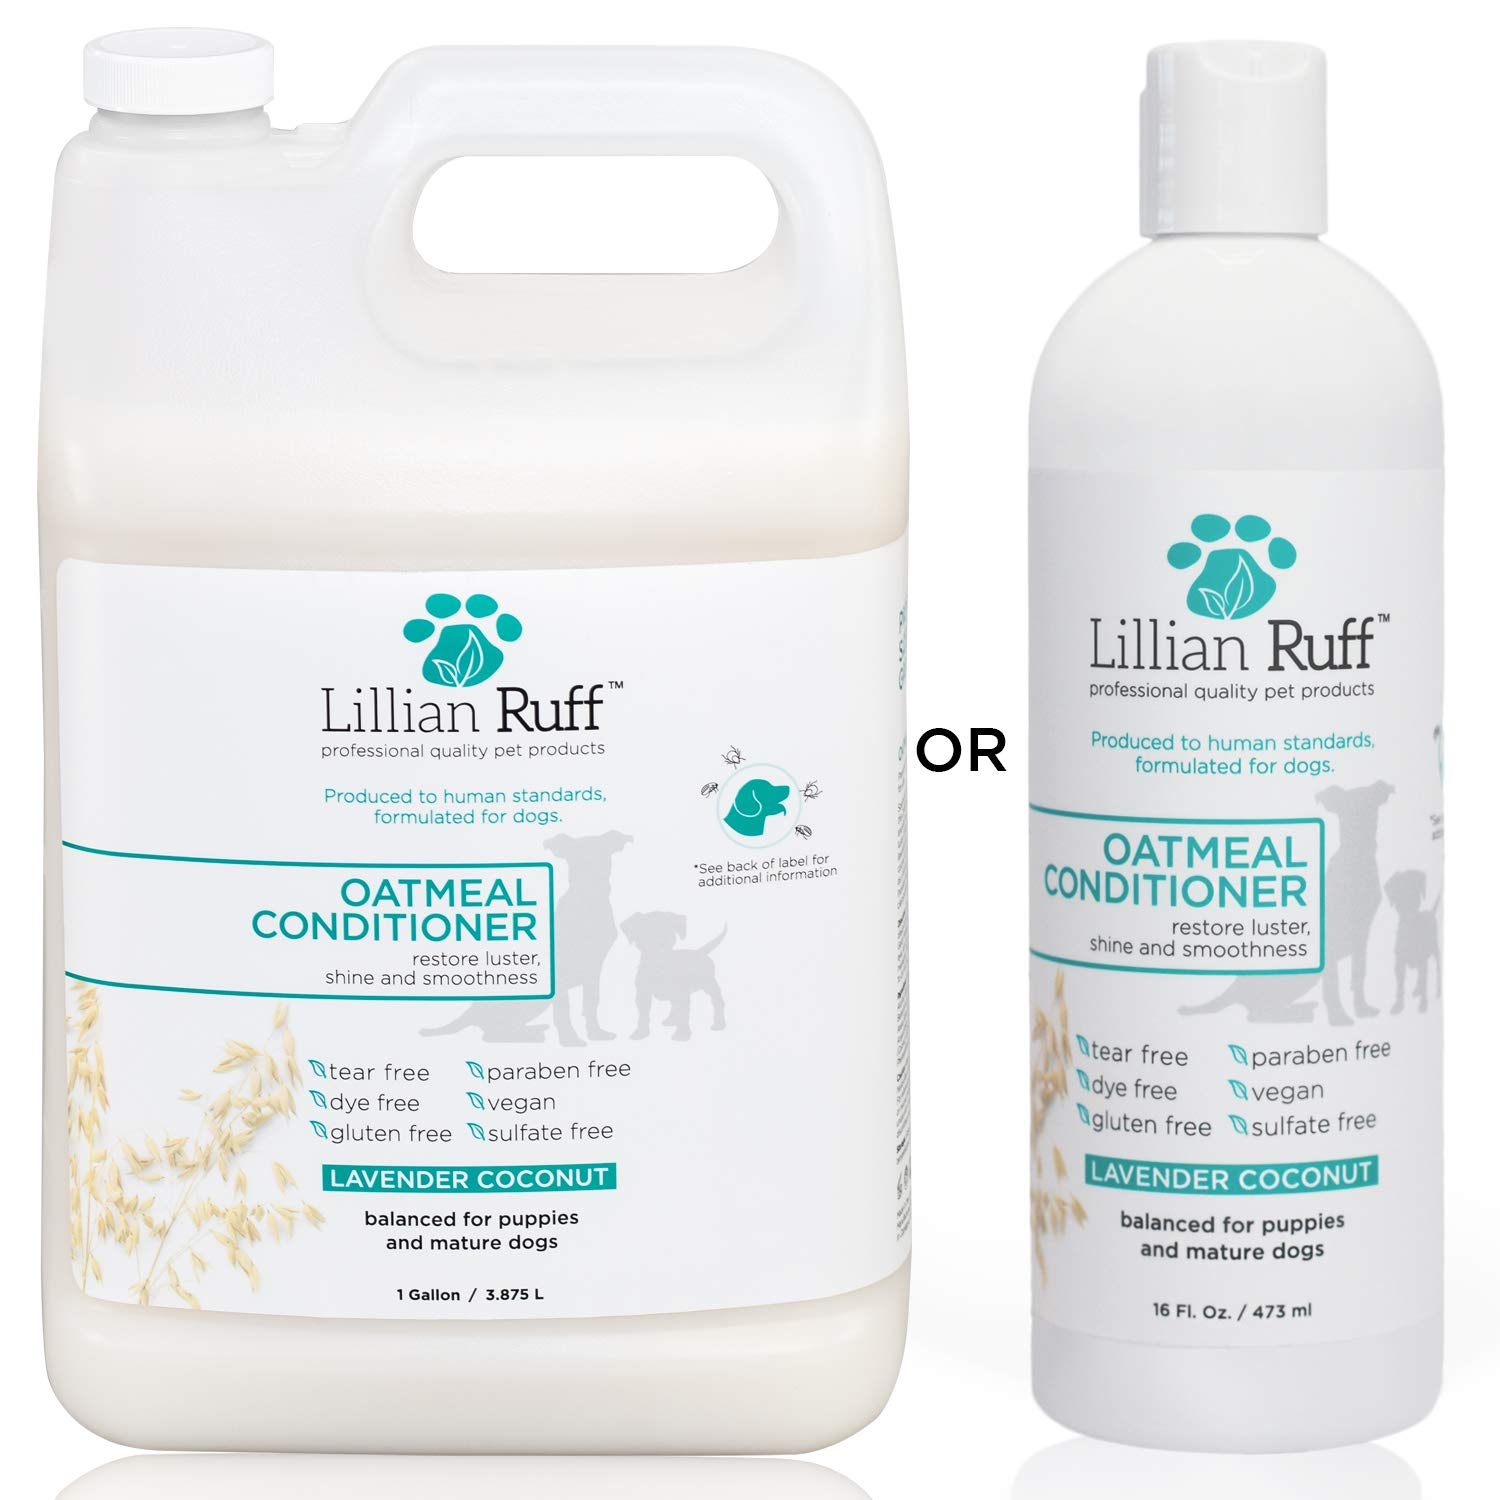 Lillian Ruff Dog Oatmeal Conditioner - Safe for Cats - Lavender Coconut Scent for Itchy Dry Skin with Aloe - Soothe Skin Irritation and Relieve itching